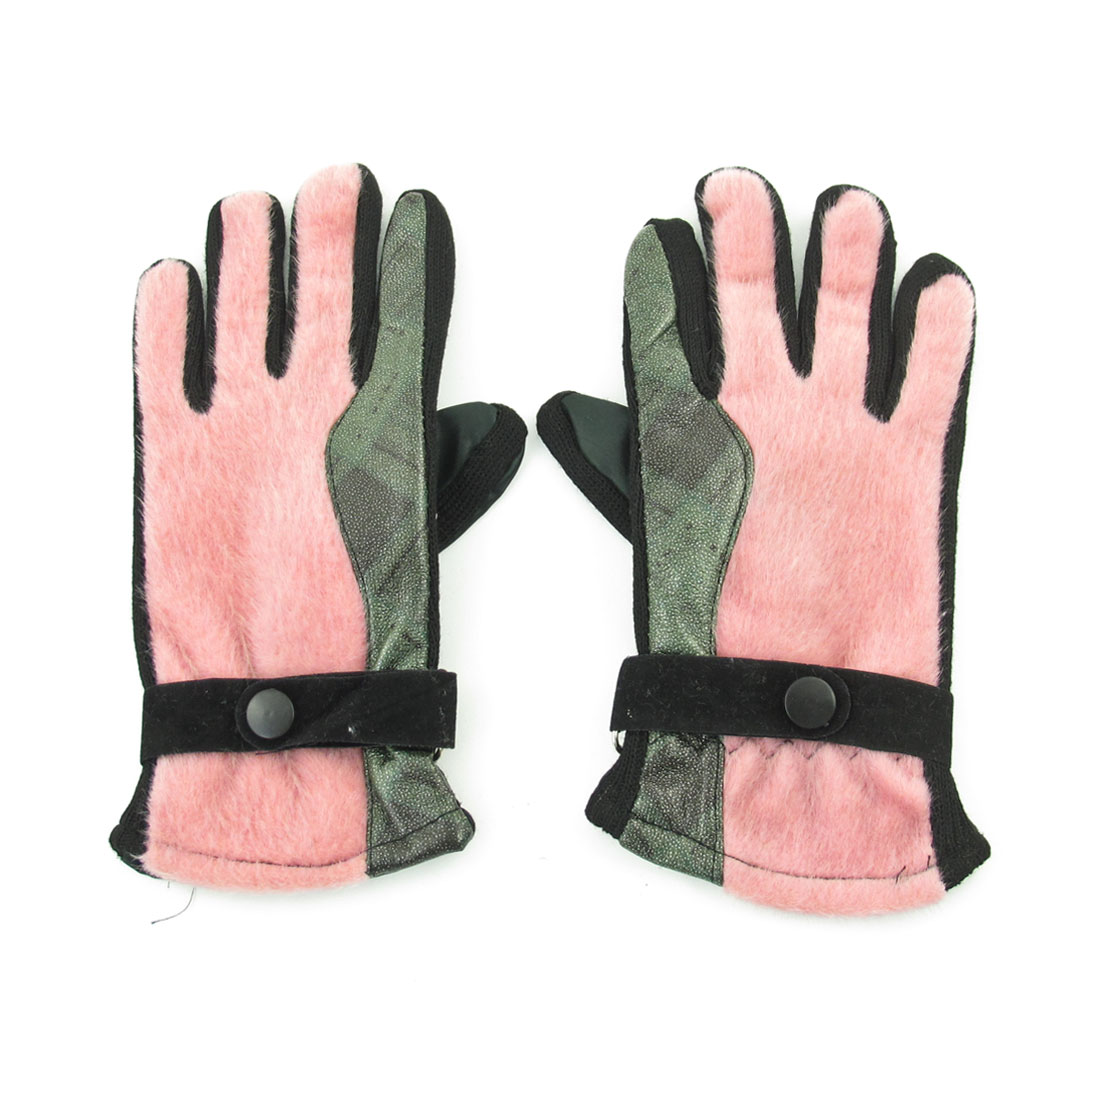 Pair Rosy Brown Fleece Lining Full Finger Winter Gloves for Lady